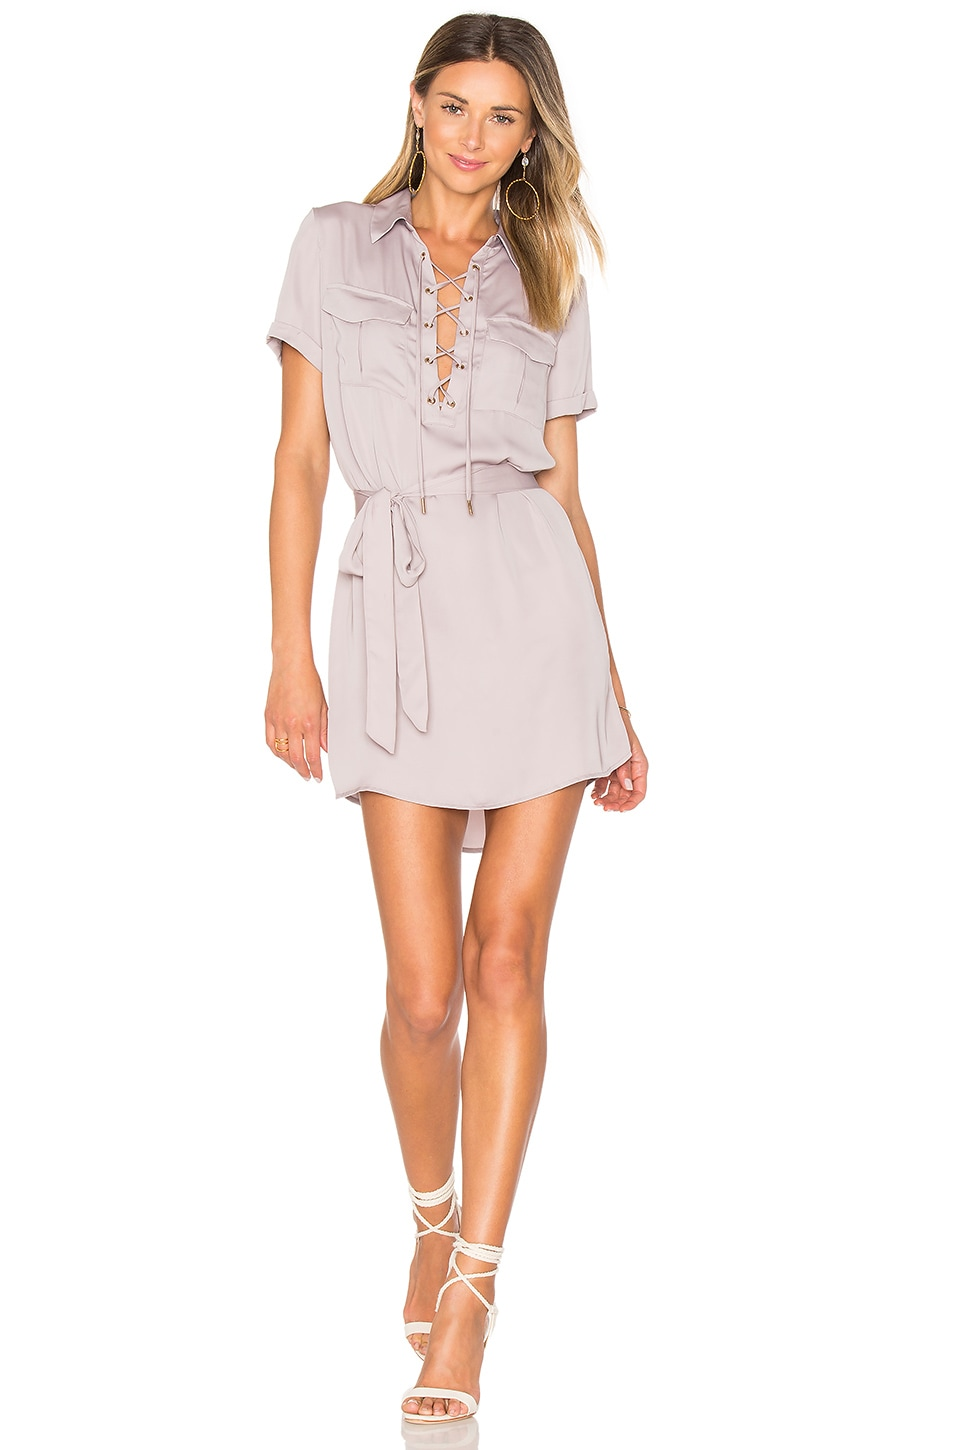 L'Academie The Safari Dress in Mauve